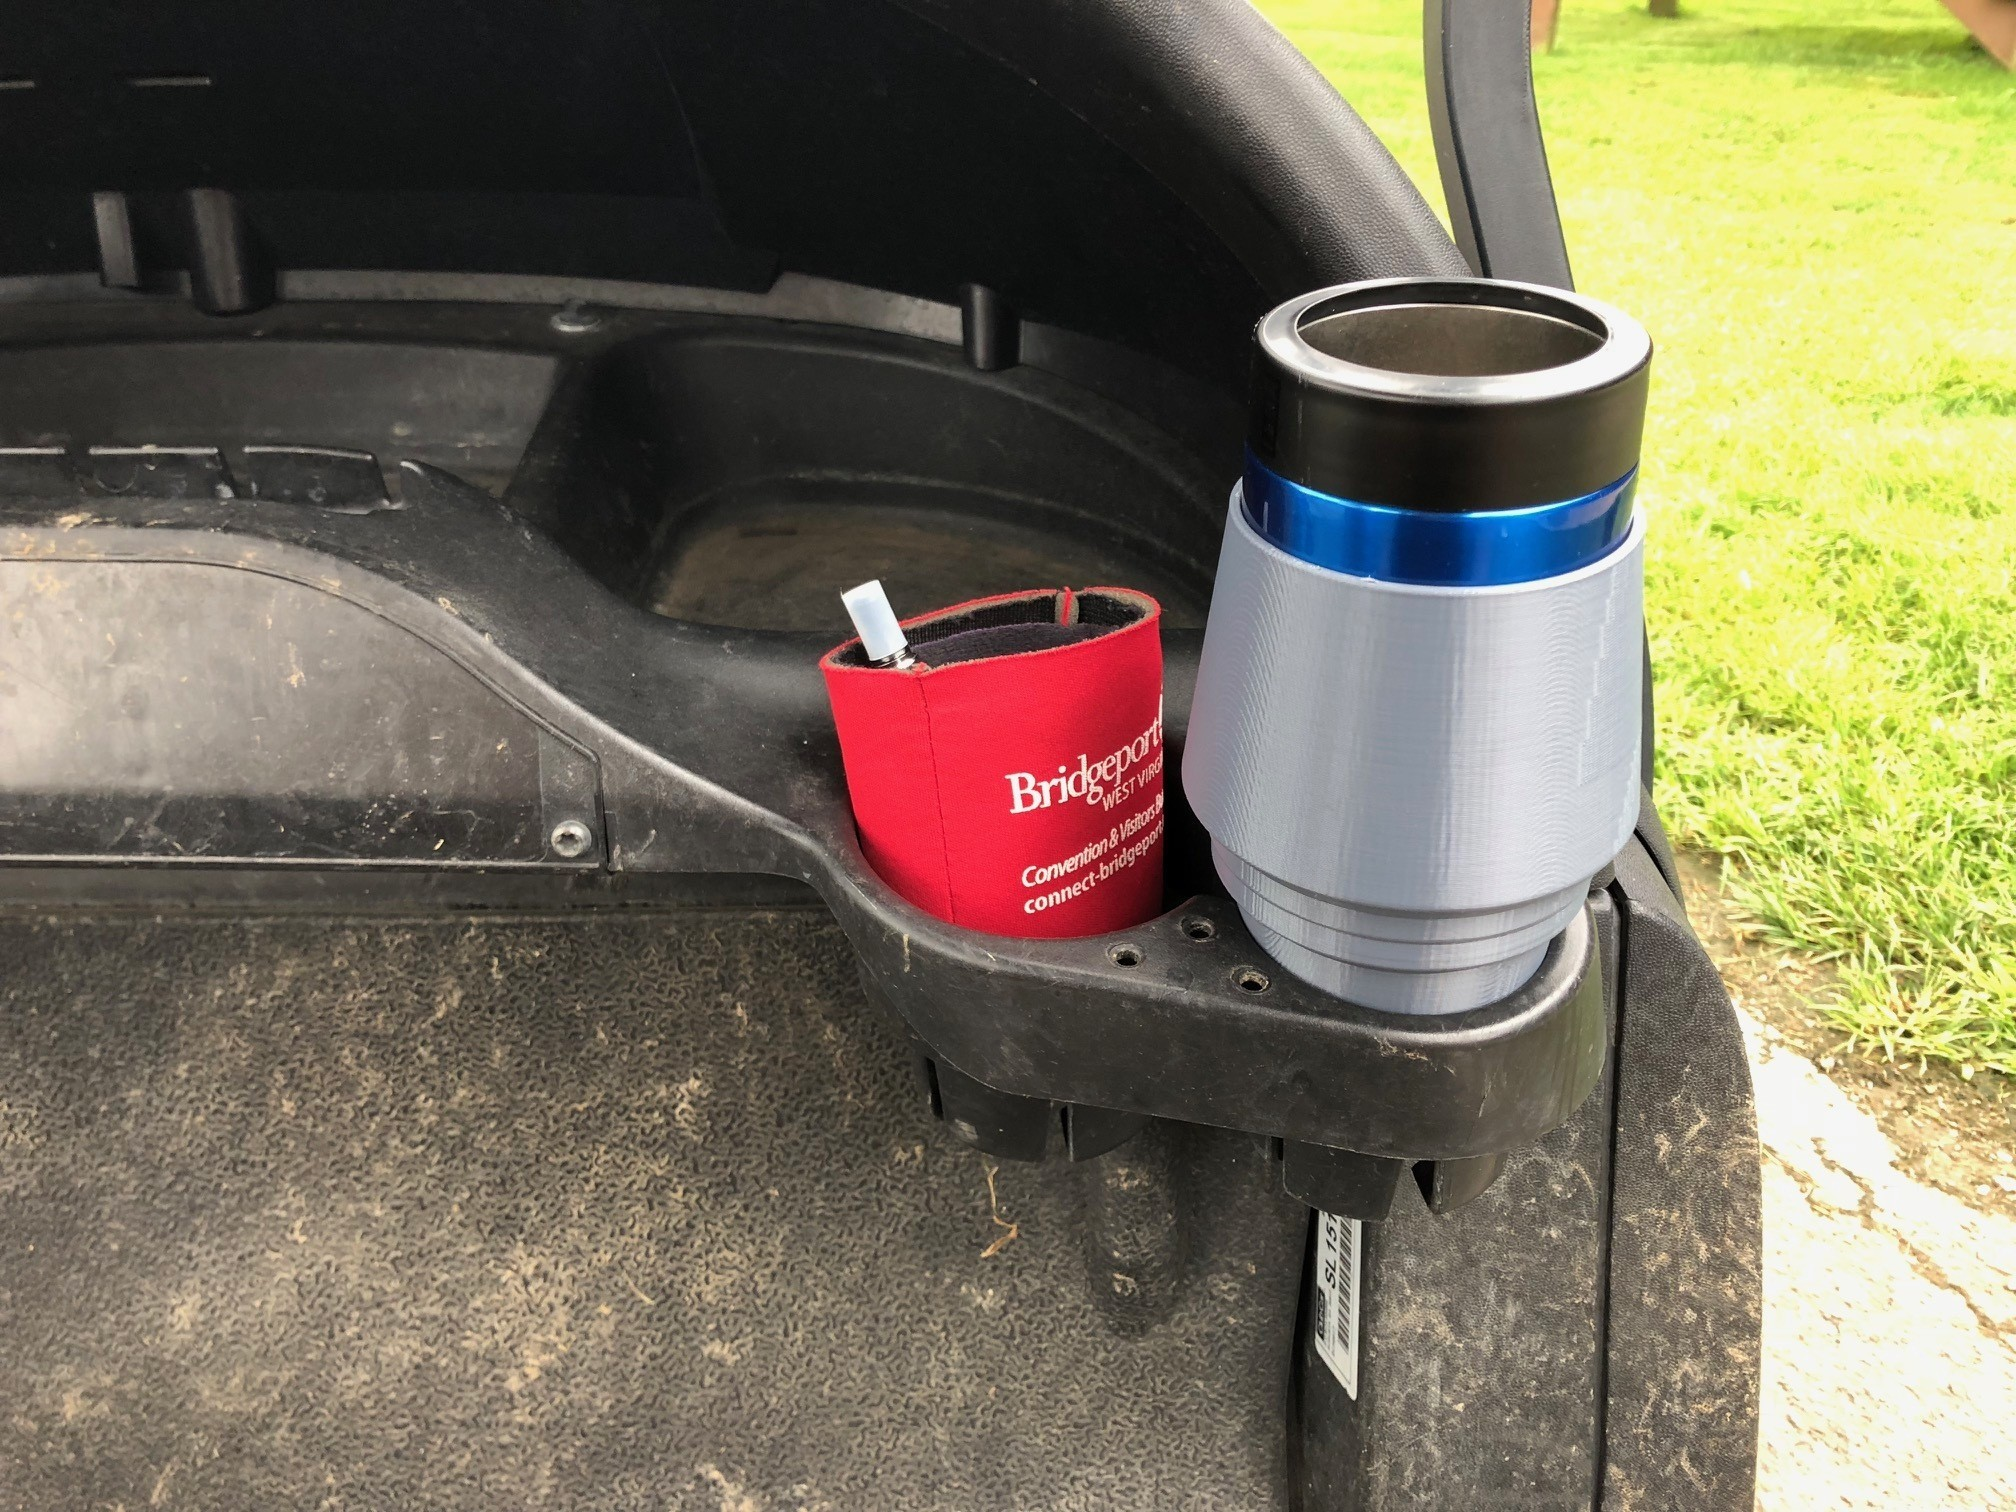 IMG_0113.jpg Download free STL file Yeti Rambler Colster Koozie Cup Holder Adapter • 3D printer object, ThatJoshGuy